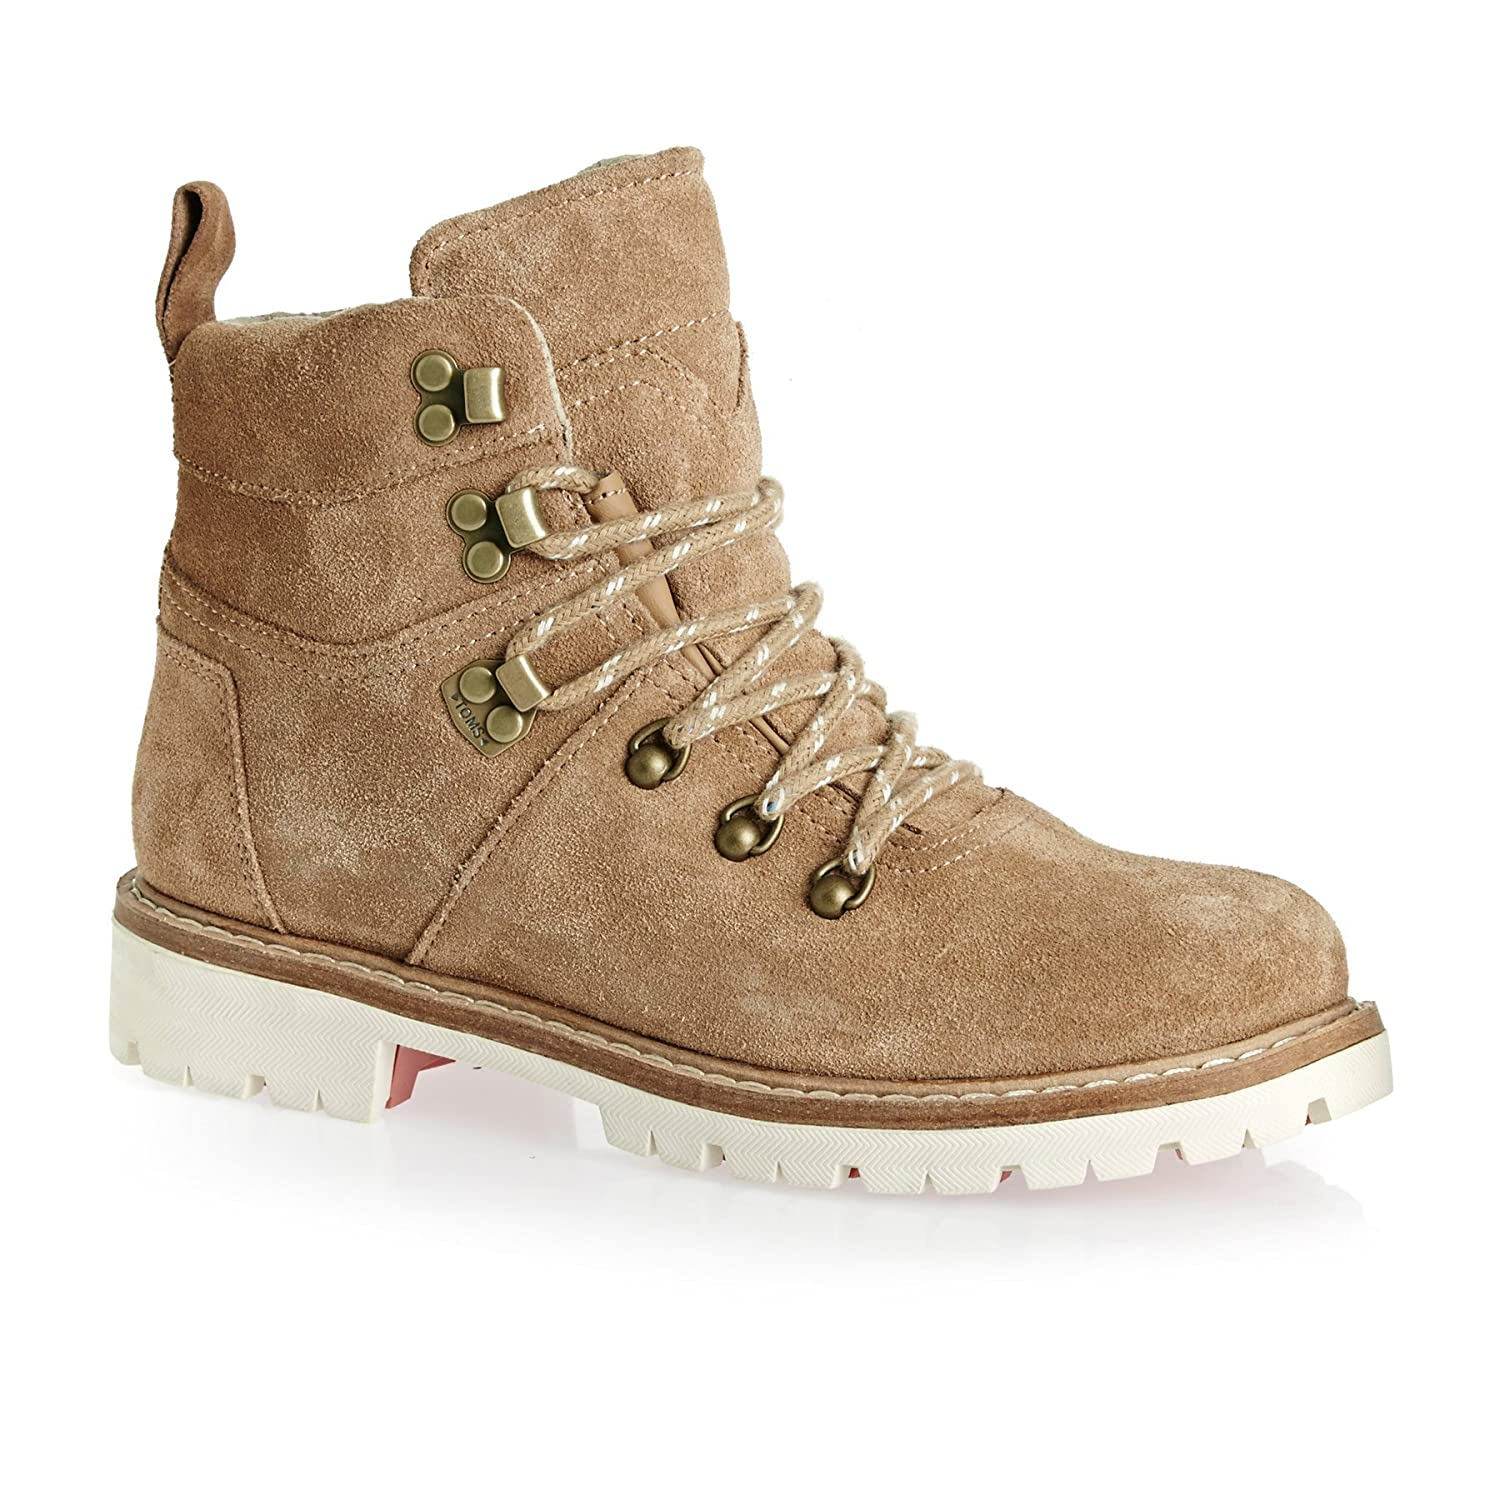 d021ab197b2 TOMS Womens Toffee Brown Summit Hiker Boots-UK 8  Amazon.co.uk  Shoes   Bags